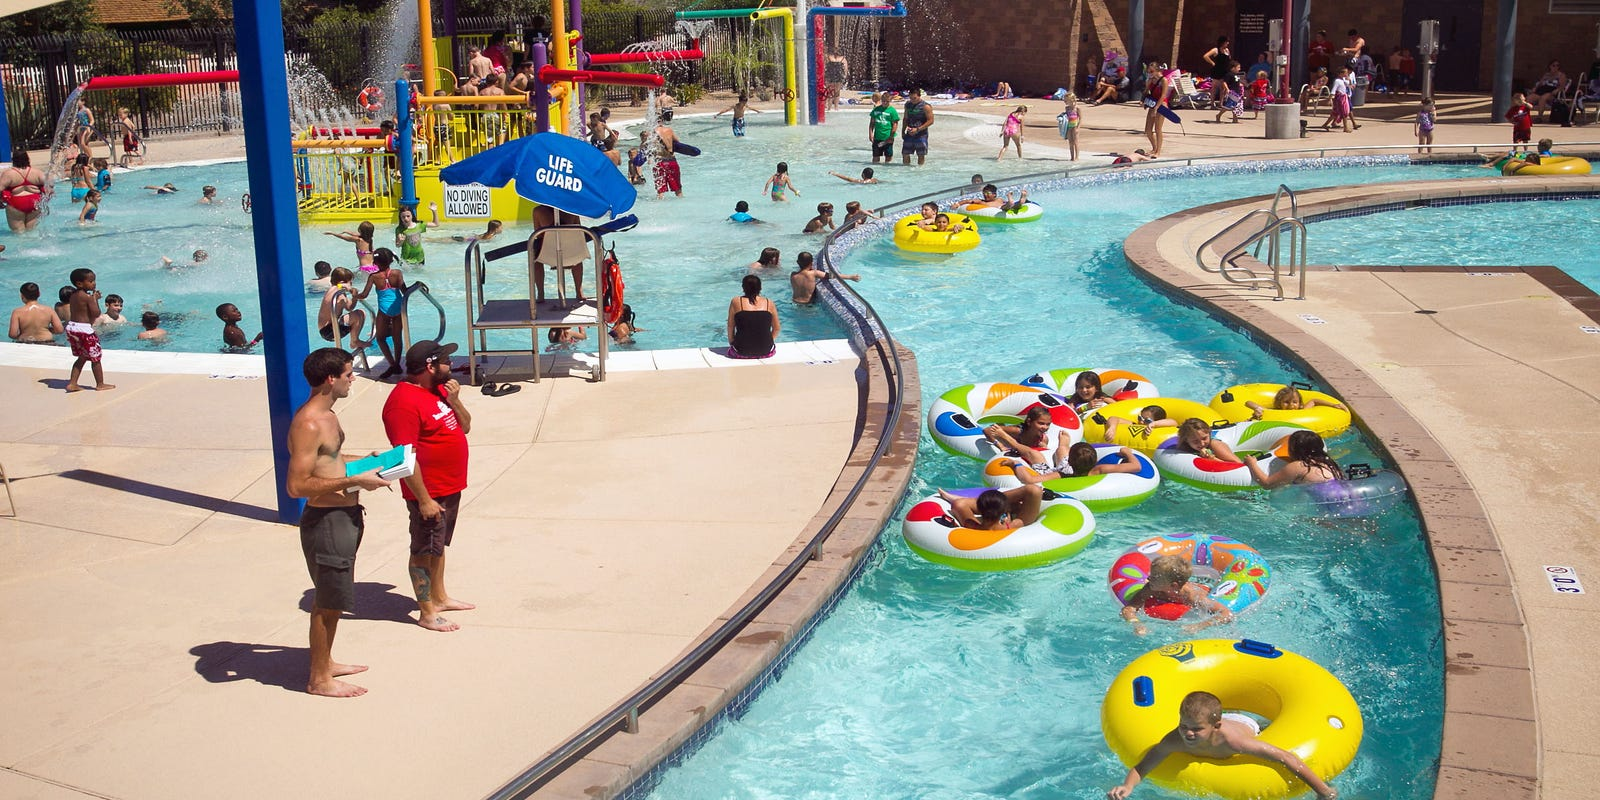 Public pools throughout metro Phoenix are reopening this summer. Here's when you can swim